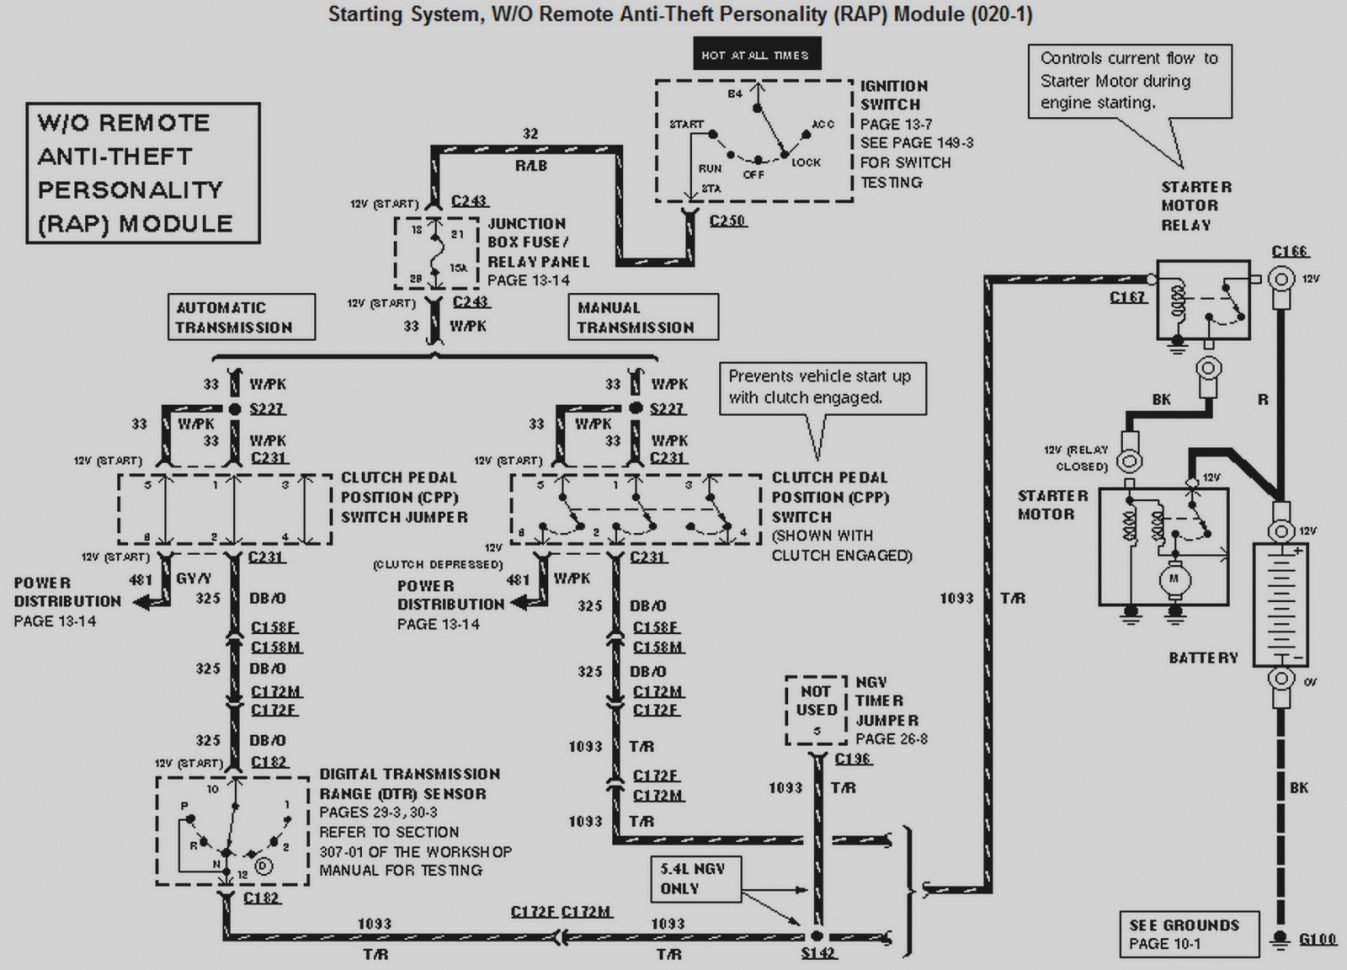 Bass Tracker Boat Electrical Wiring - 97 Ford Fuse Box Diagram -  5pin.yenpancane.jeanjaures37.fr | Bass Tracker Wiring Diagram |  | Wiring Diagram Resource